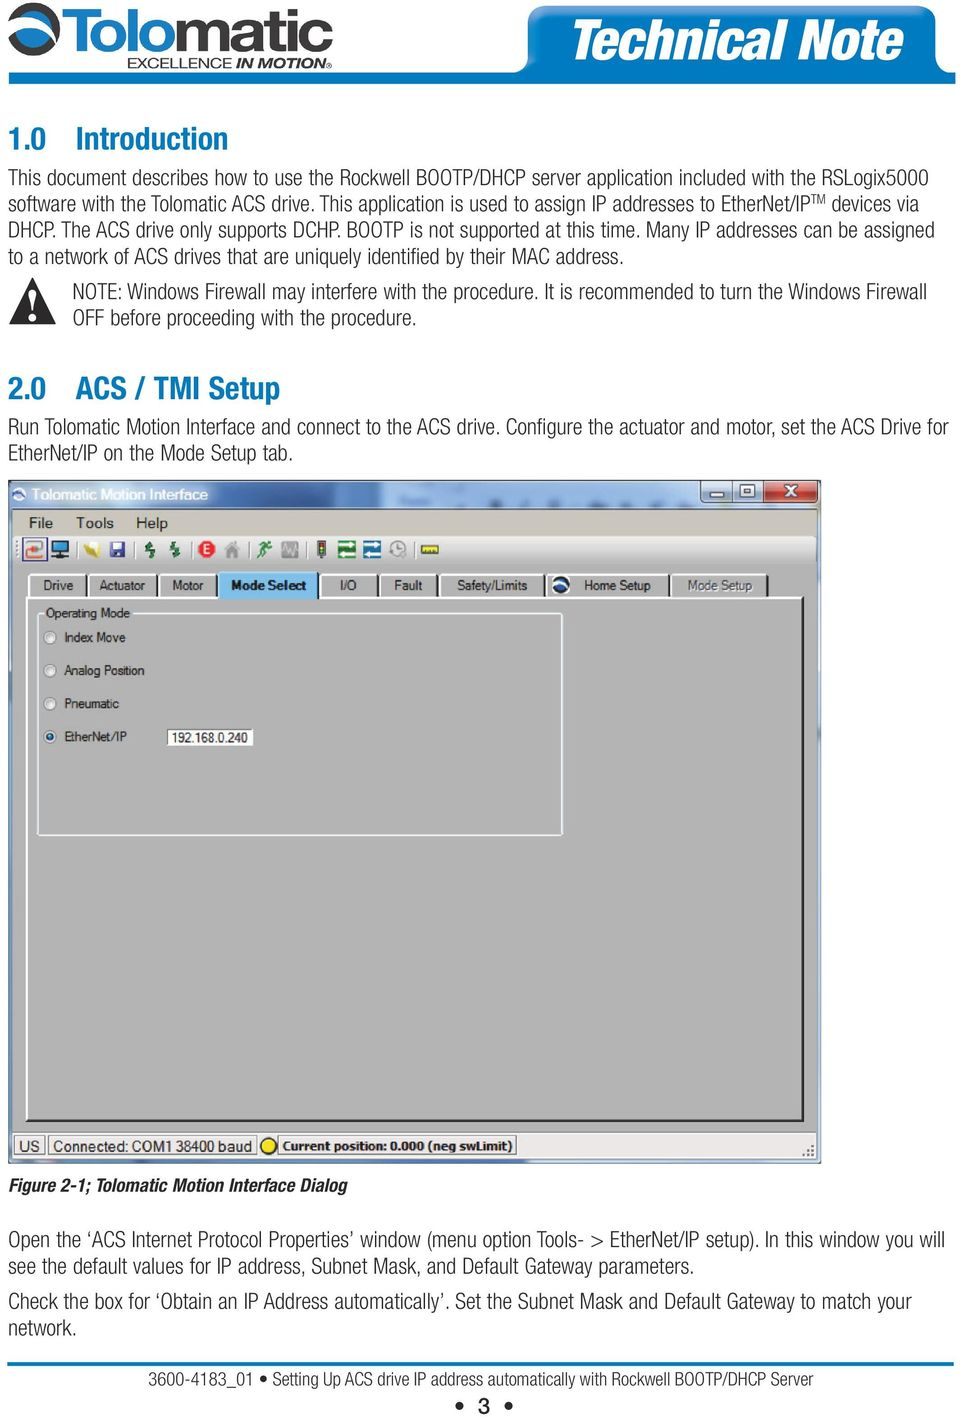 Technical Note  Setting ACS drive IP address automatically